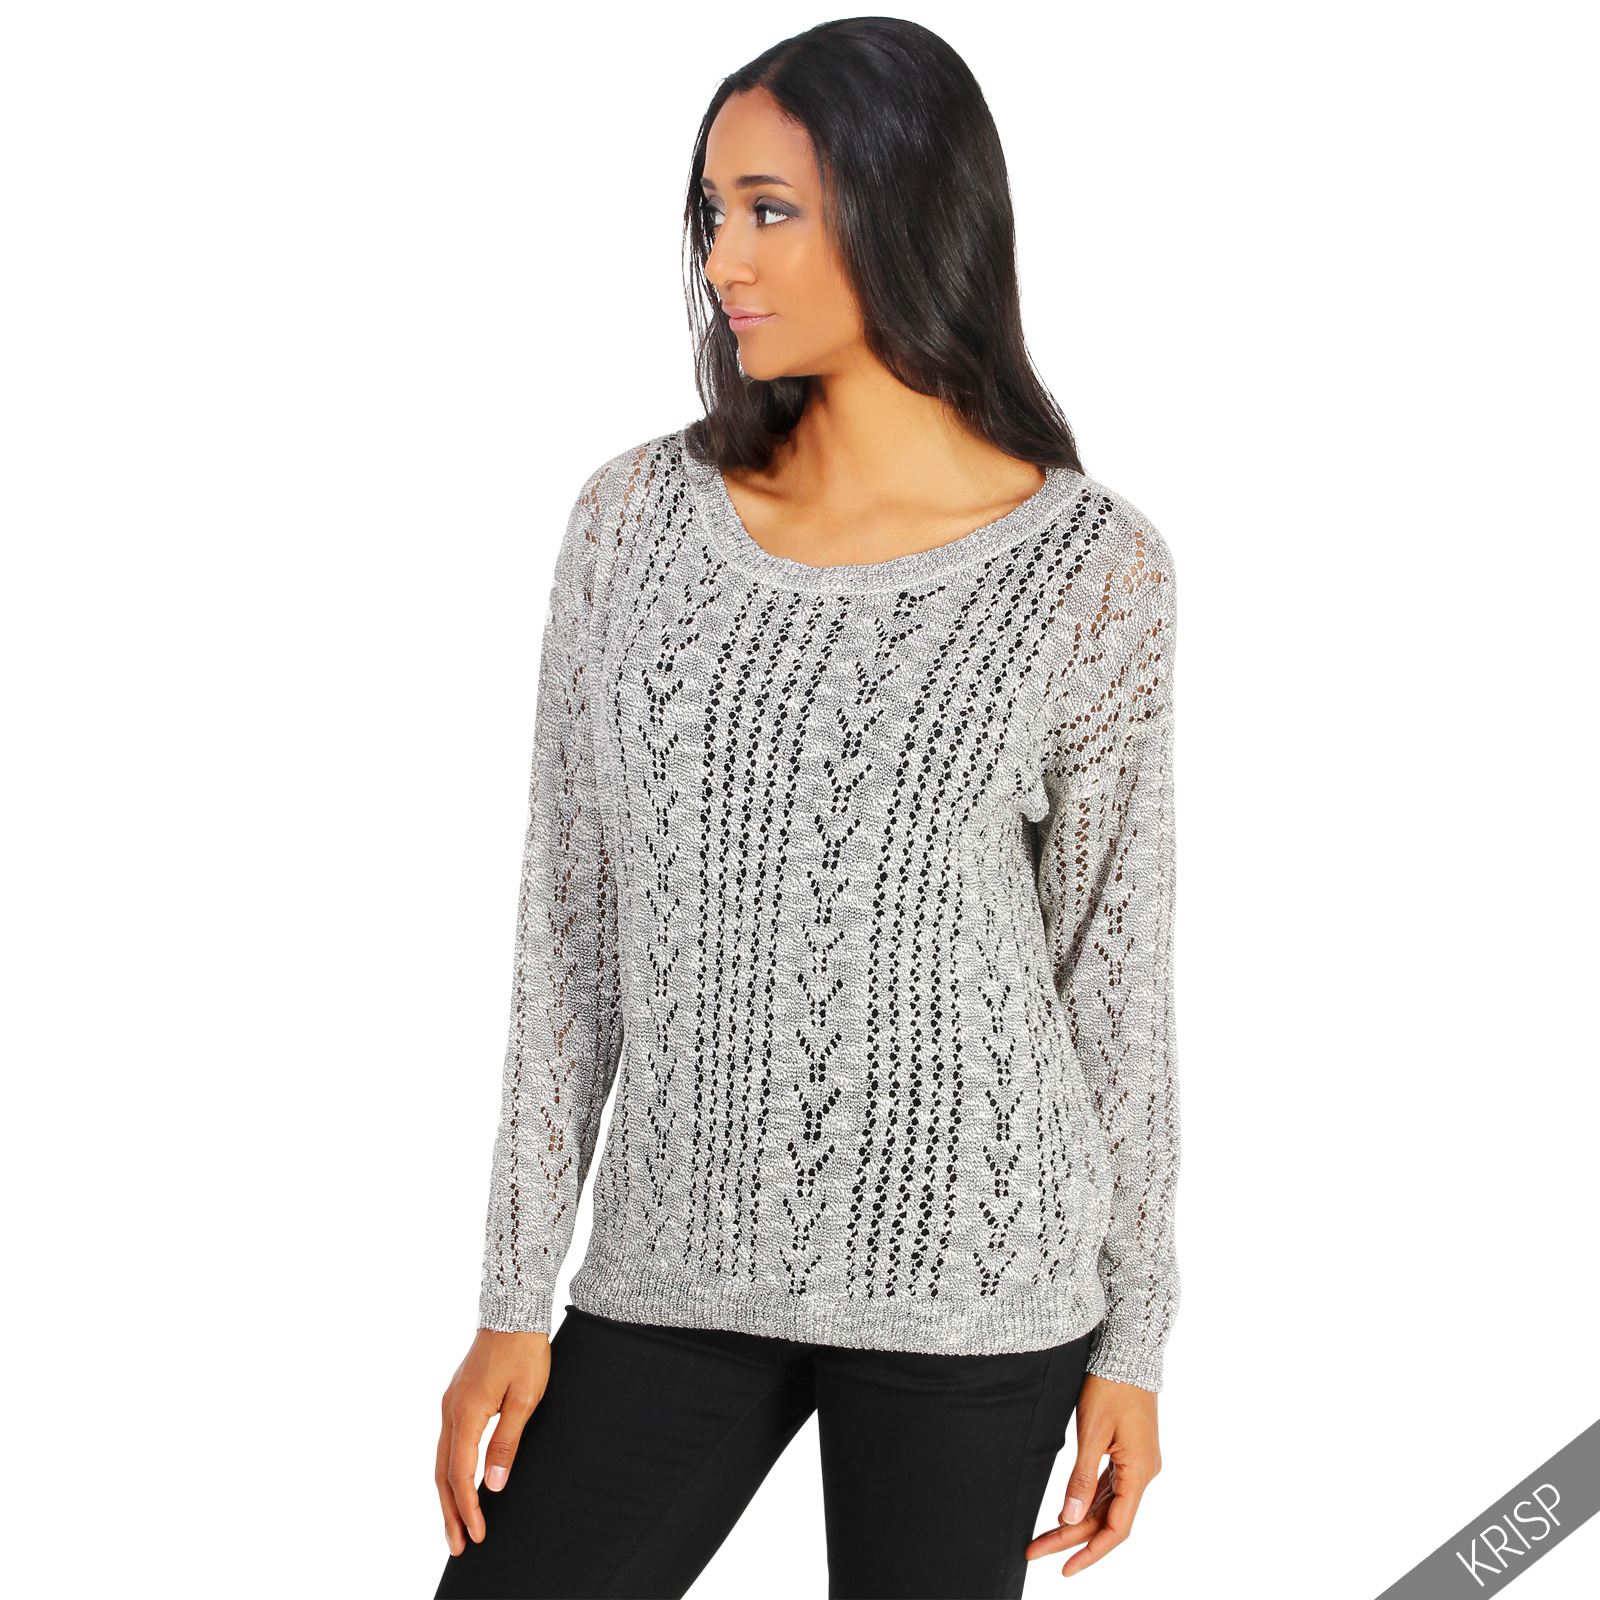 Chunky Knit Sweaters. Clothing. Juniors. Juniors Sweaters. Chunky Knit Sweaters. Showing 48 of results that match your query. Hendi Women's Chunky Knit Hooded Long Cardigan (M/L, Grey) Product - Poof! Juniors' Stiped Chunky Lace-Up Pullover Sweater.